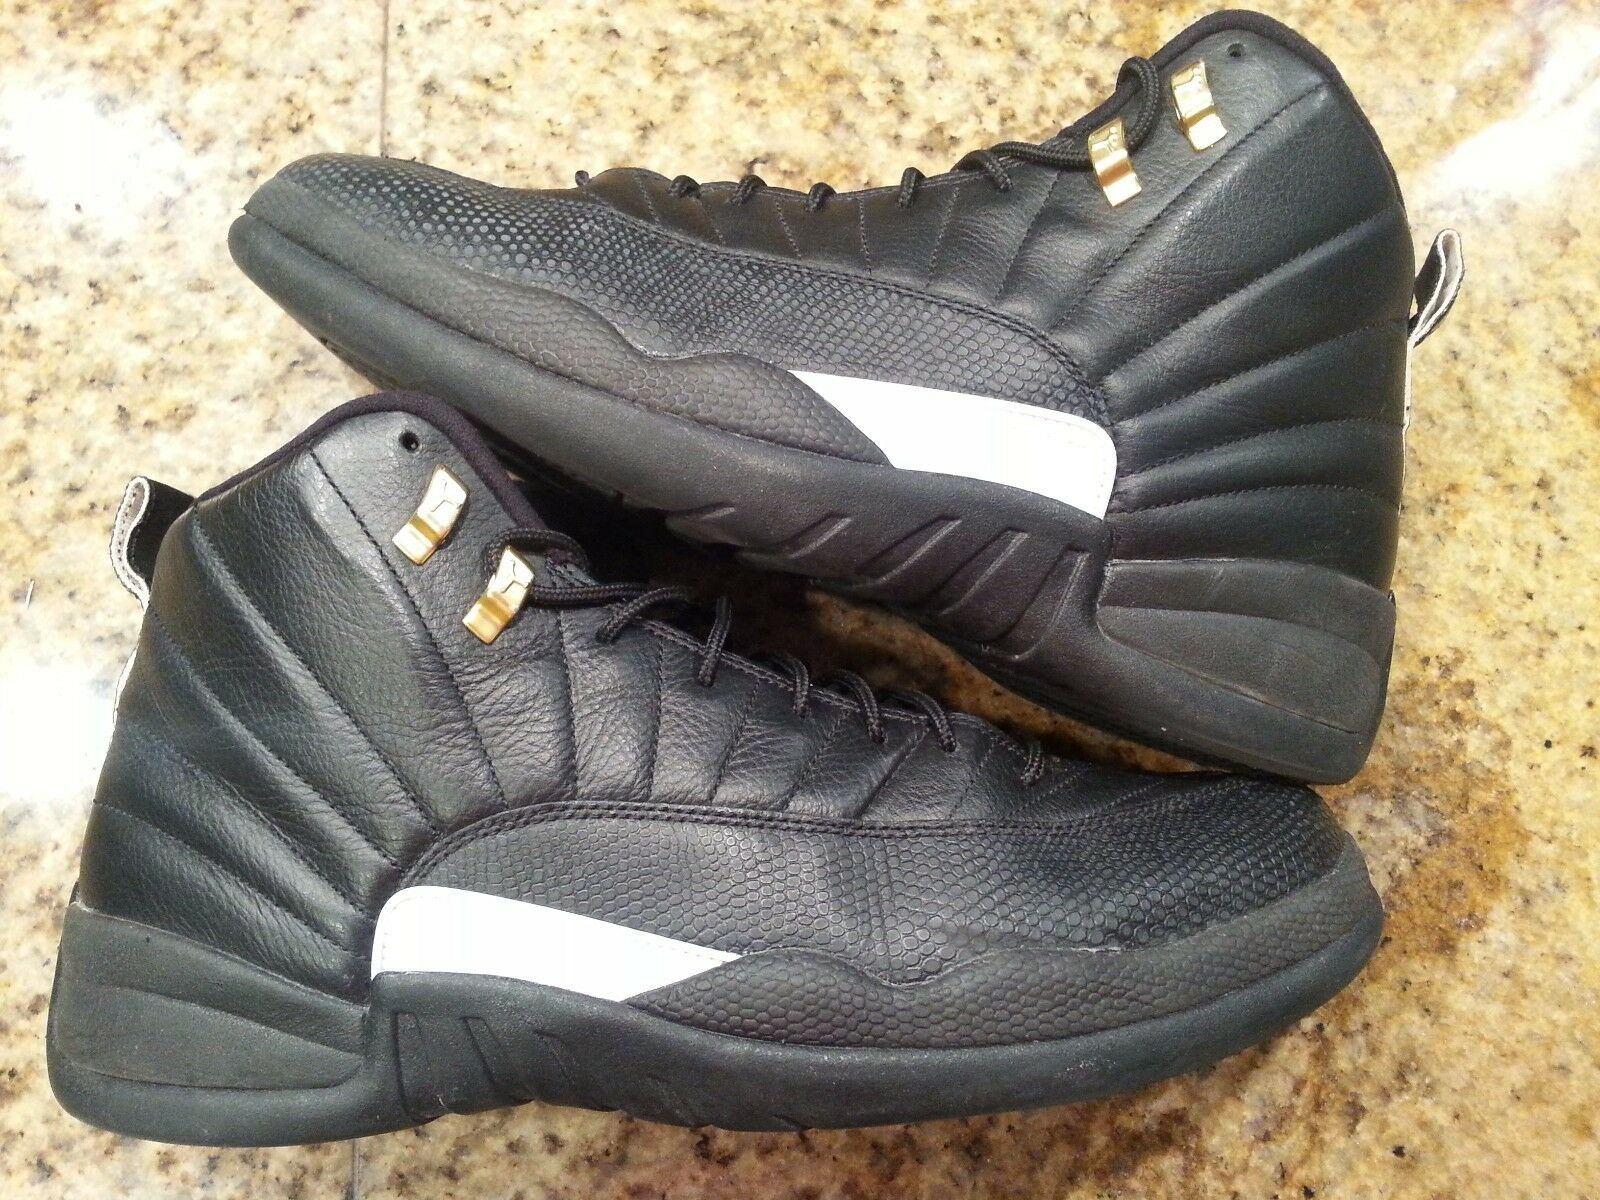 2016 NIKE AIR JORDAN 12 XII RETRO THE MASTER Size 13. 130690-013 flu gamma taxi